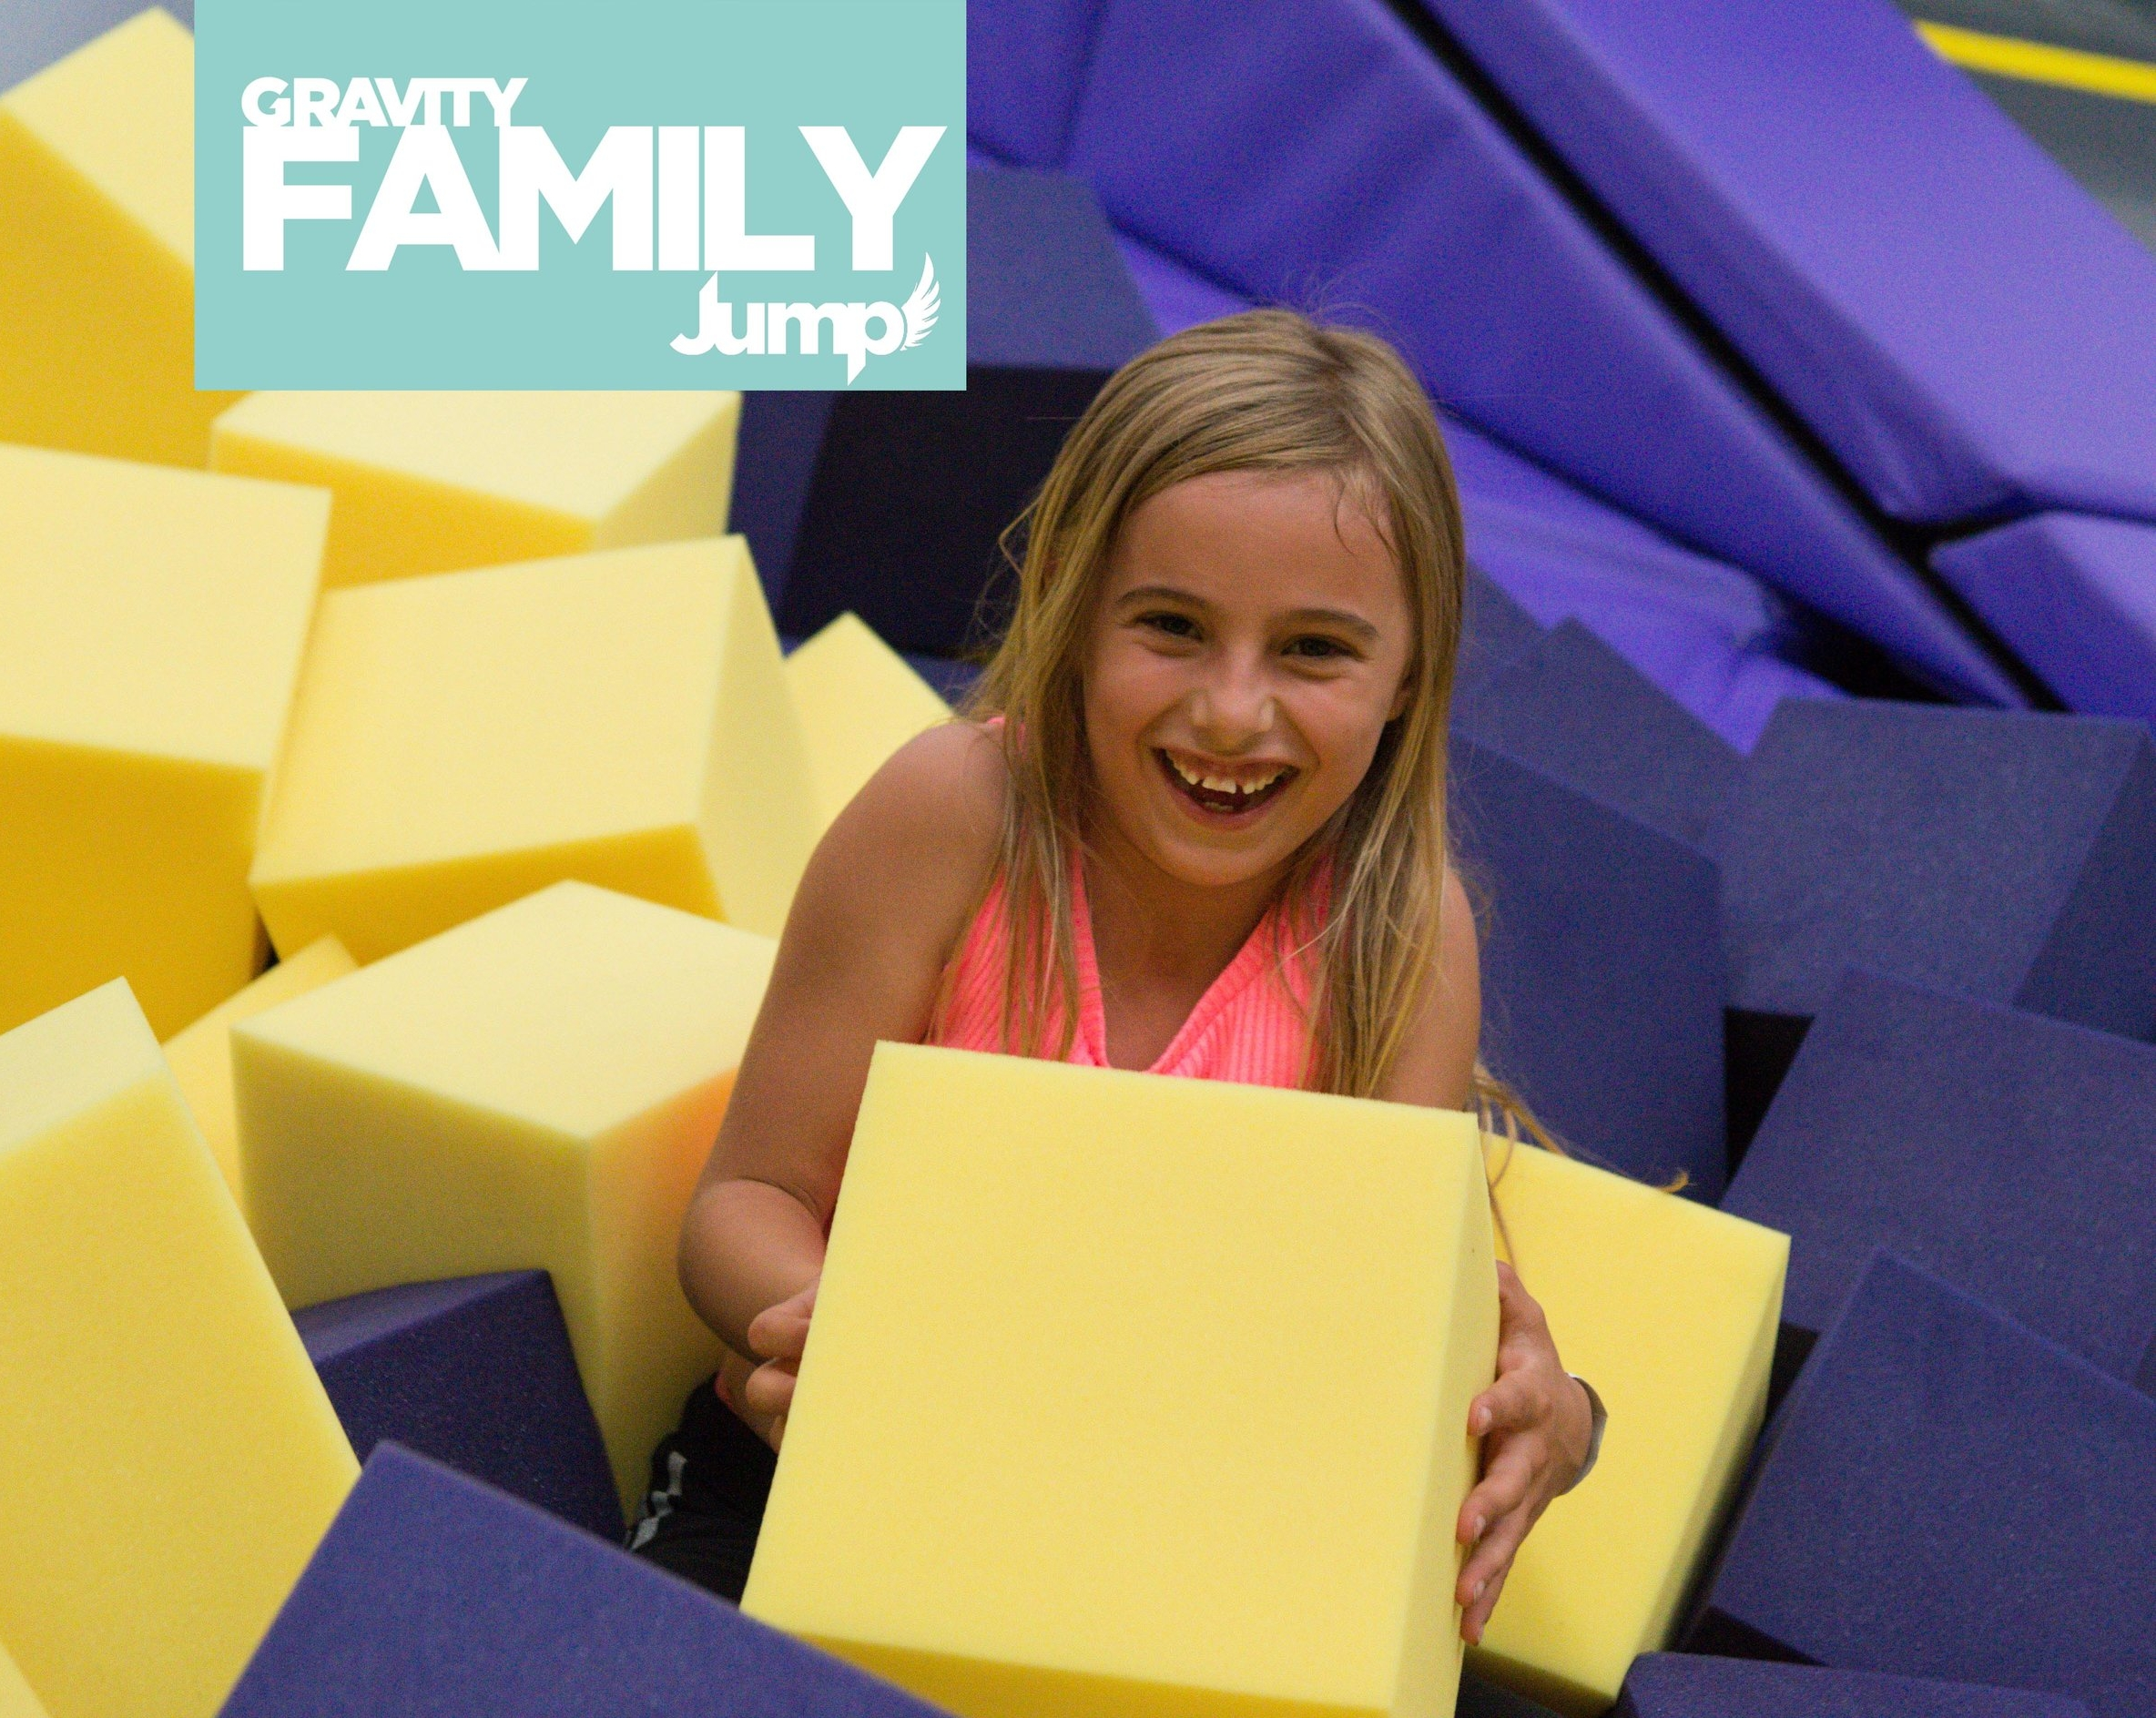 Family fun starts here! Get your whole crew down to our trampoline playground for some serious bouncing. Best suits children aged 8 and upwards.